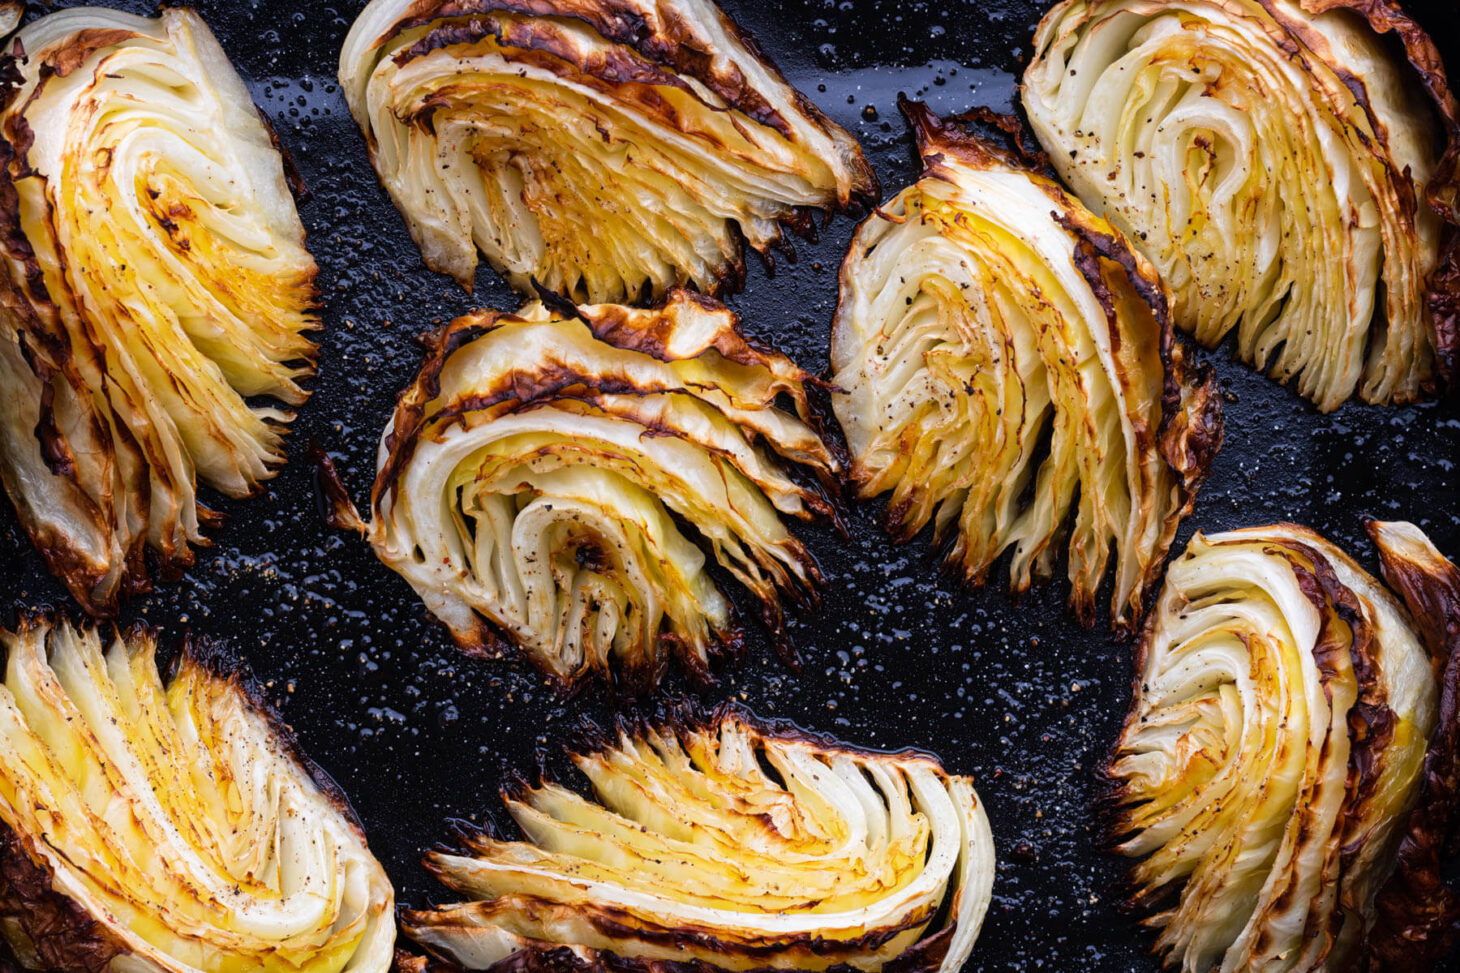 Roasted Cabbage Wedges in a dark roasting pan.